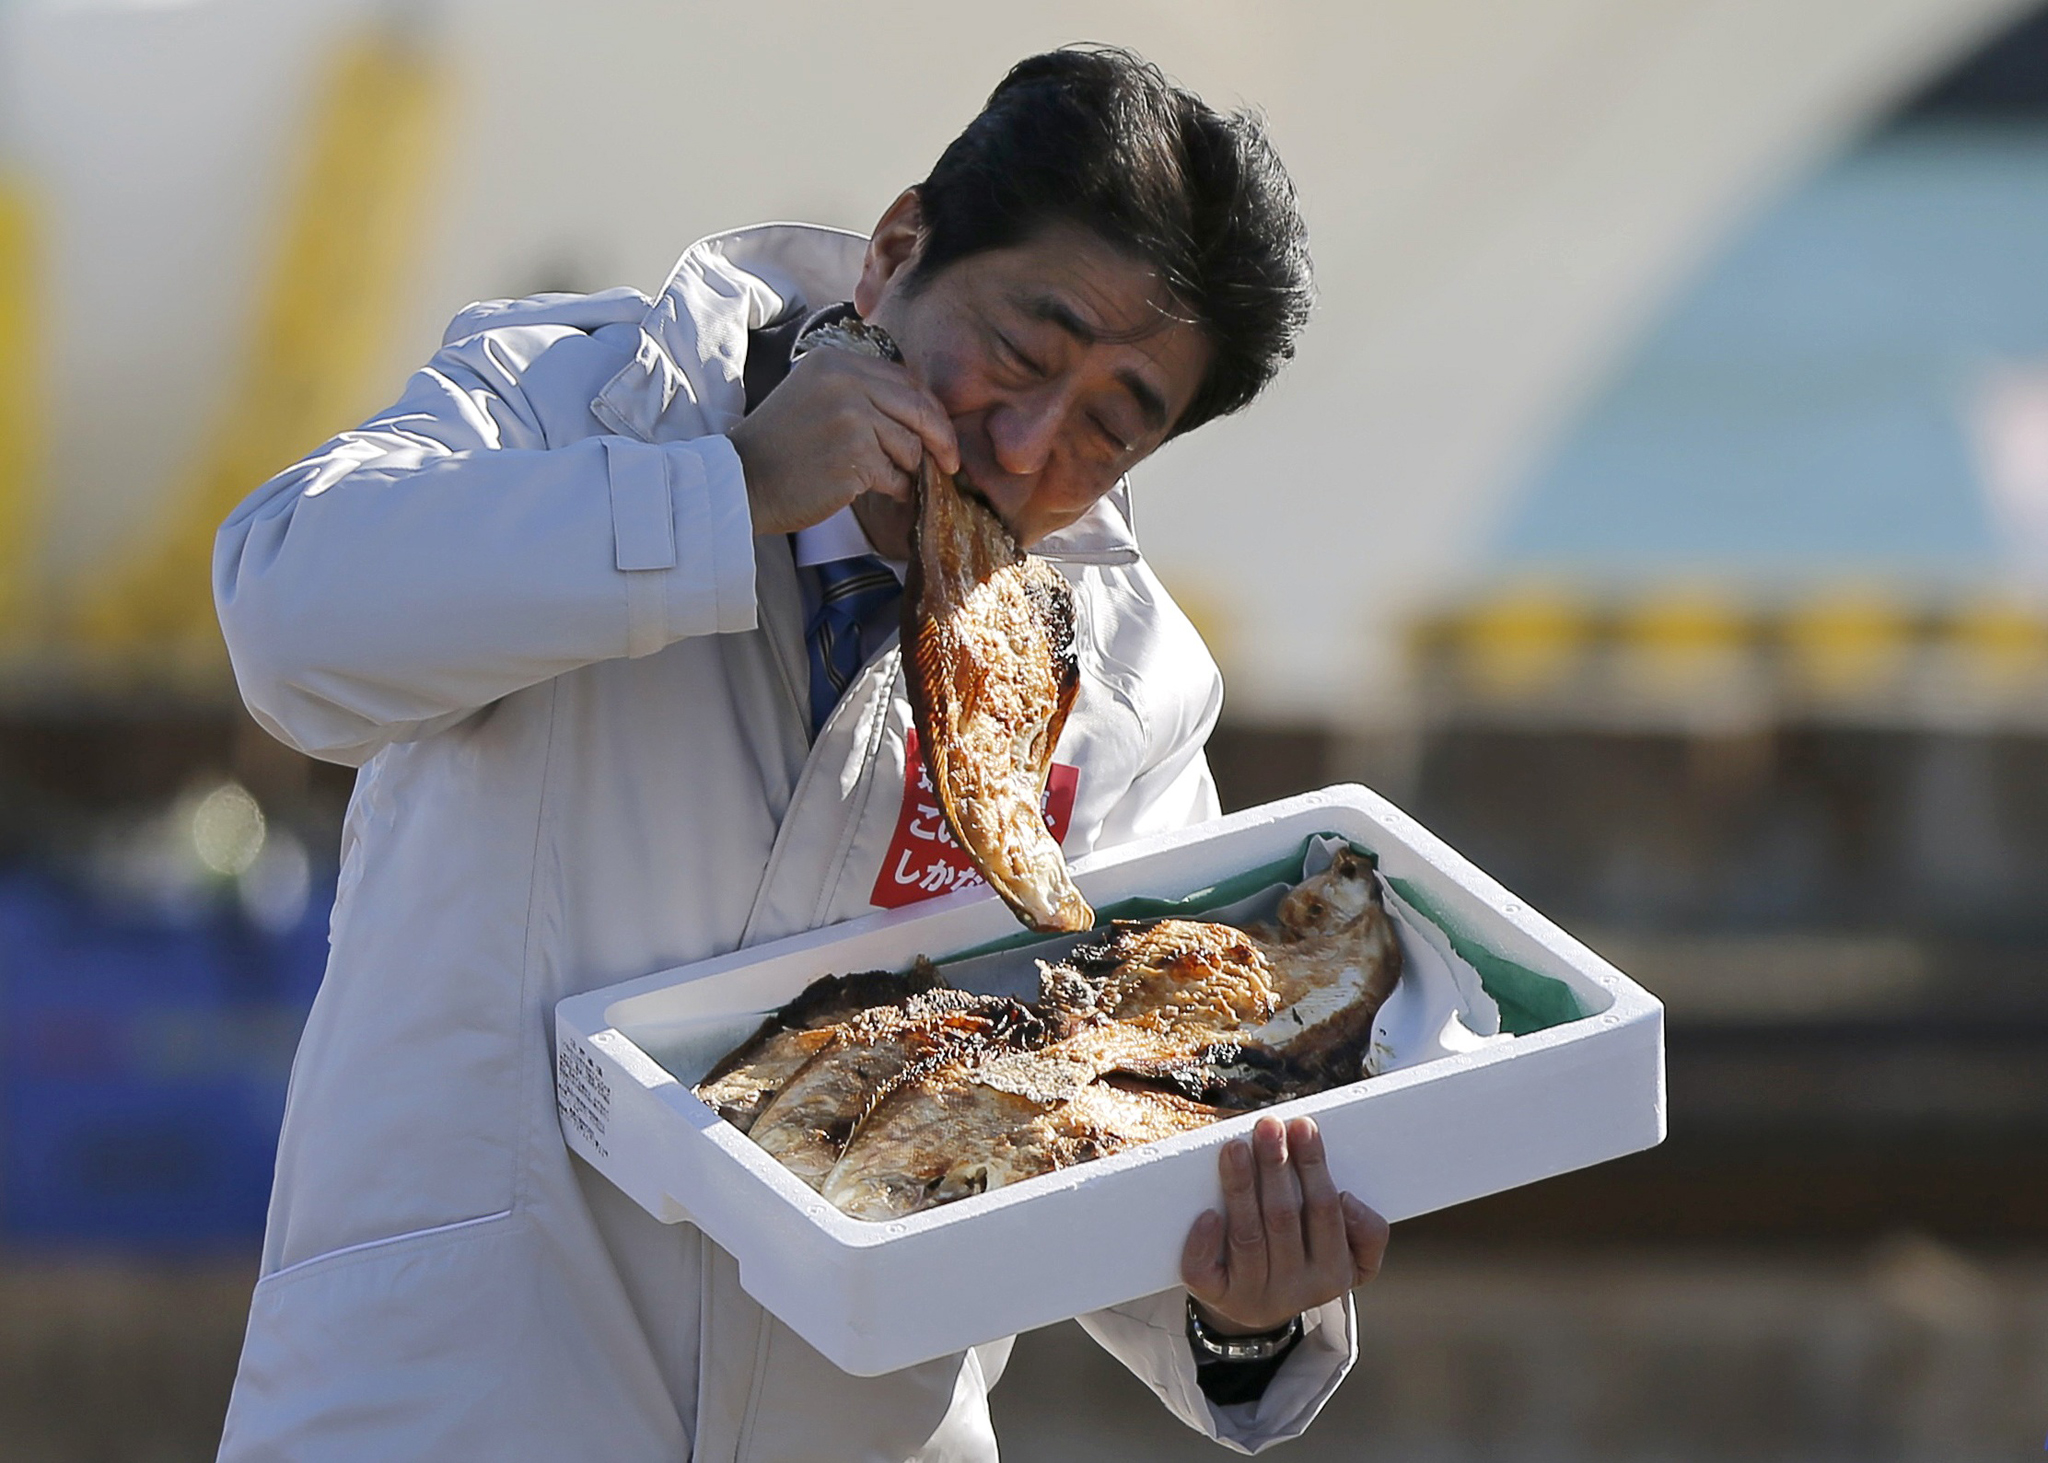 Japan PM Abe eats a local grilled fish during his official campaign kick-off for the Dec 14 lower house election, in Soma...Japan's Prime Minister Shinzo Abe, who is also leader of the ruling Liberal Democratic Party (LDP), eats a local grilled fish during his official campaign kick-off for the December 14 lower house election, at the Soma Haragama fishing port in Soma, Fukushima prefecture, December 2, 2014.    REUTERS/Issei Kato (JAPAN - Tags: POLITICS ELECTIONS FOOD TPX IMAGES OF THE DAY)